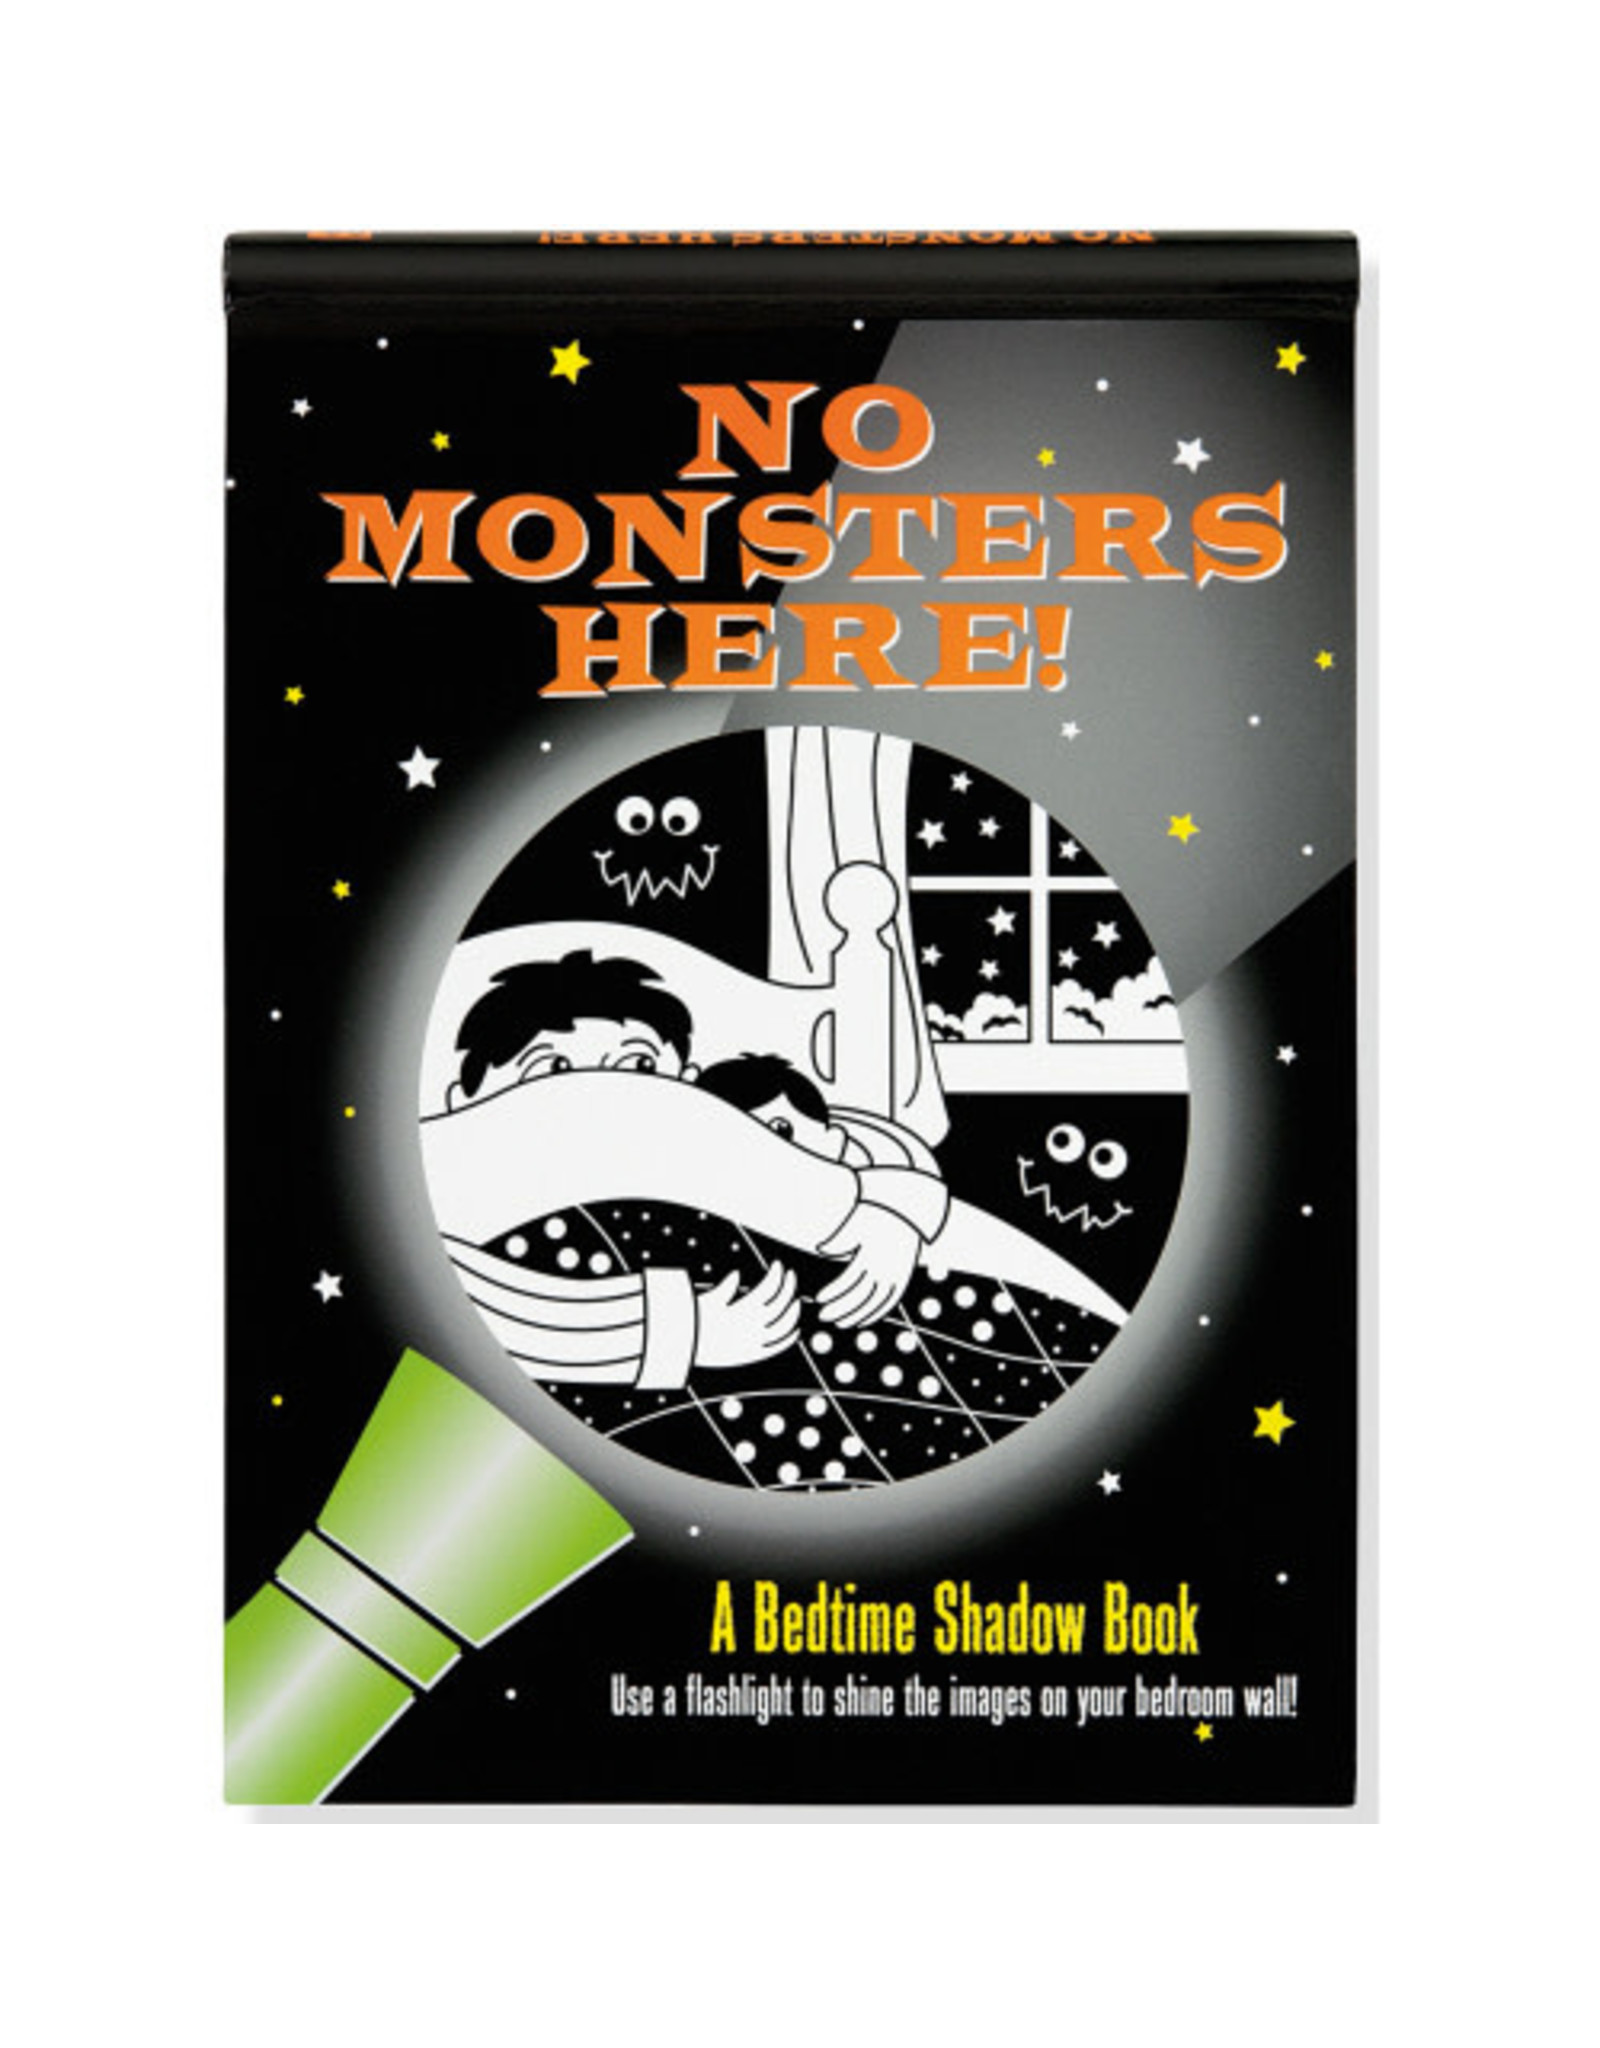 Bedtime Shadow Book: No Monsters Here